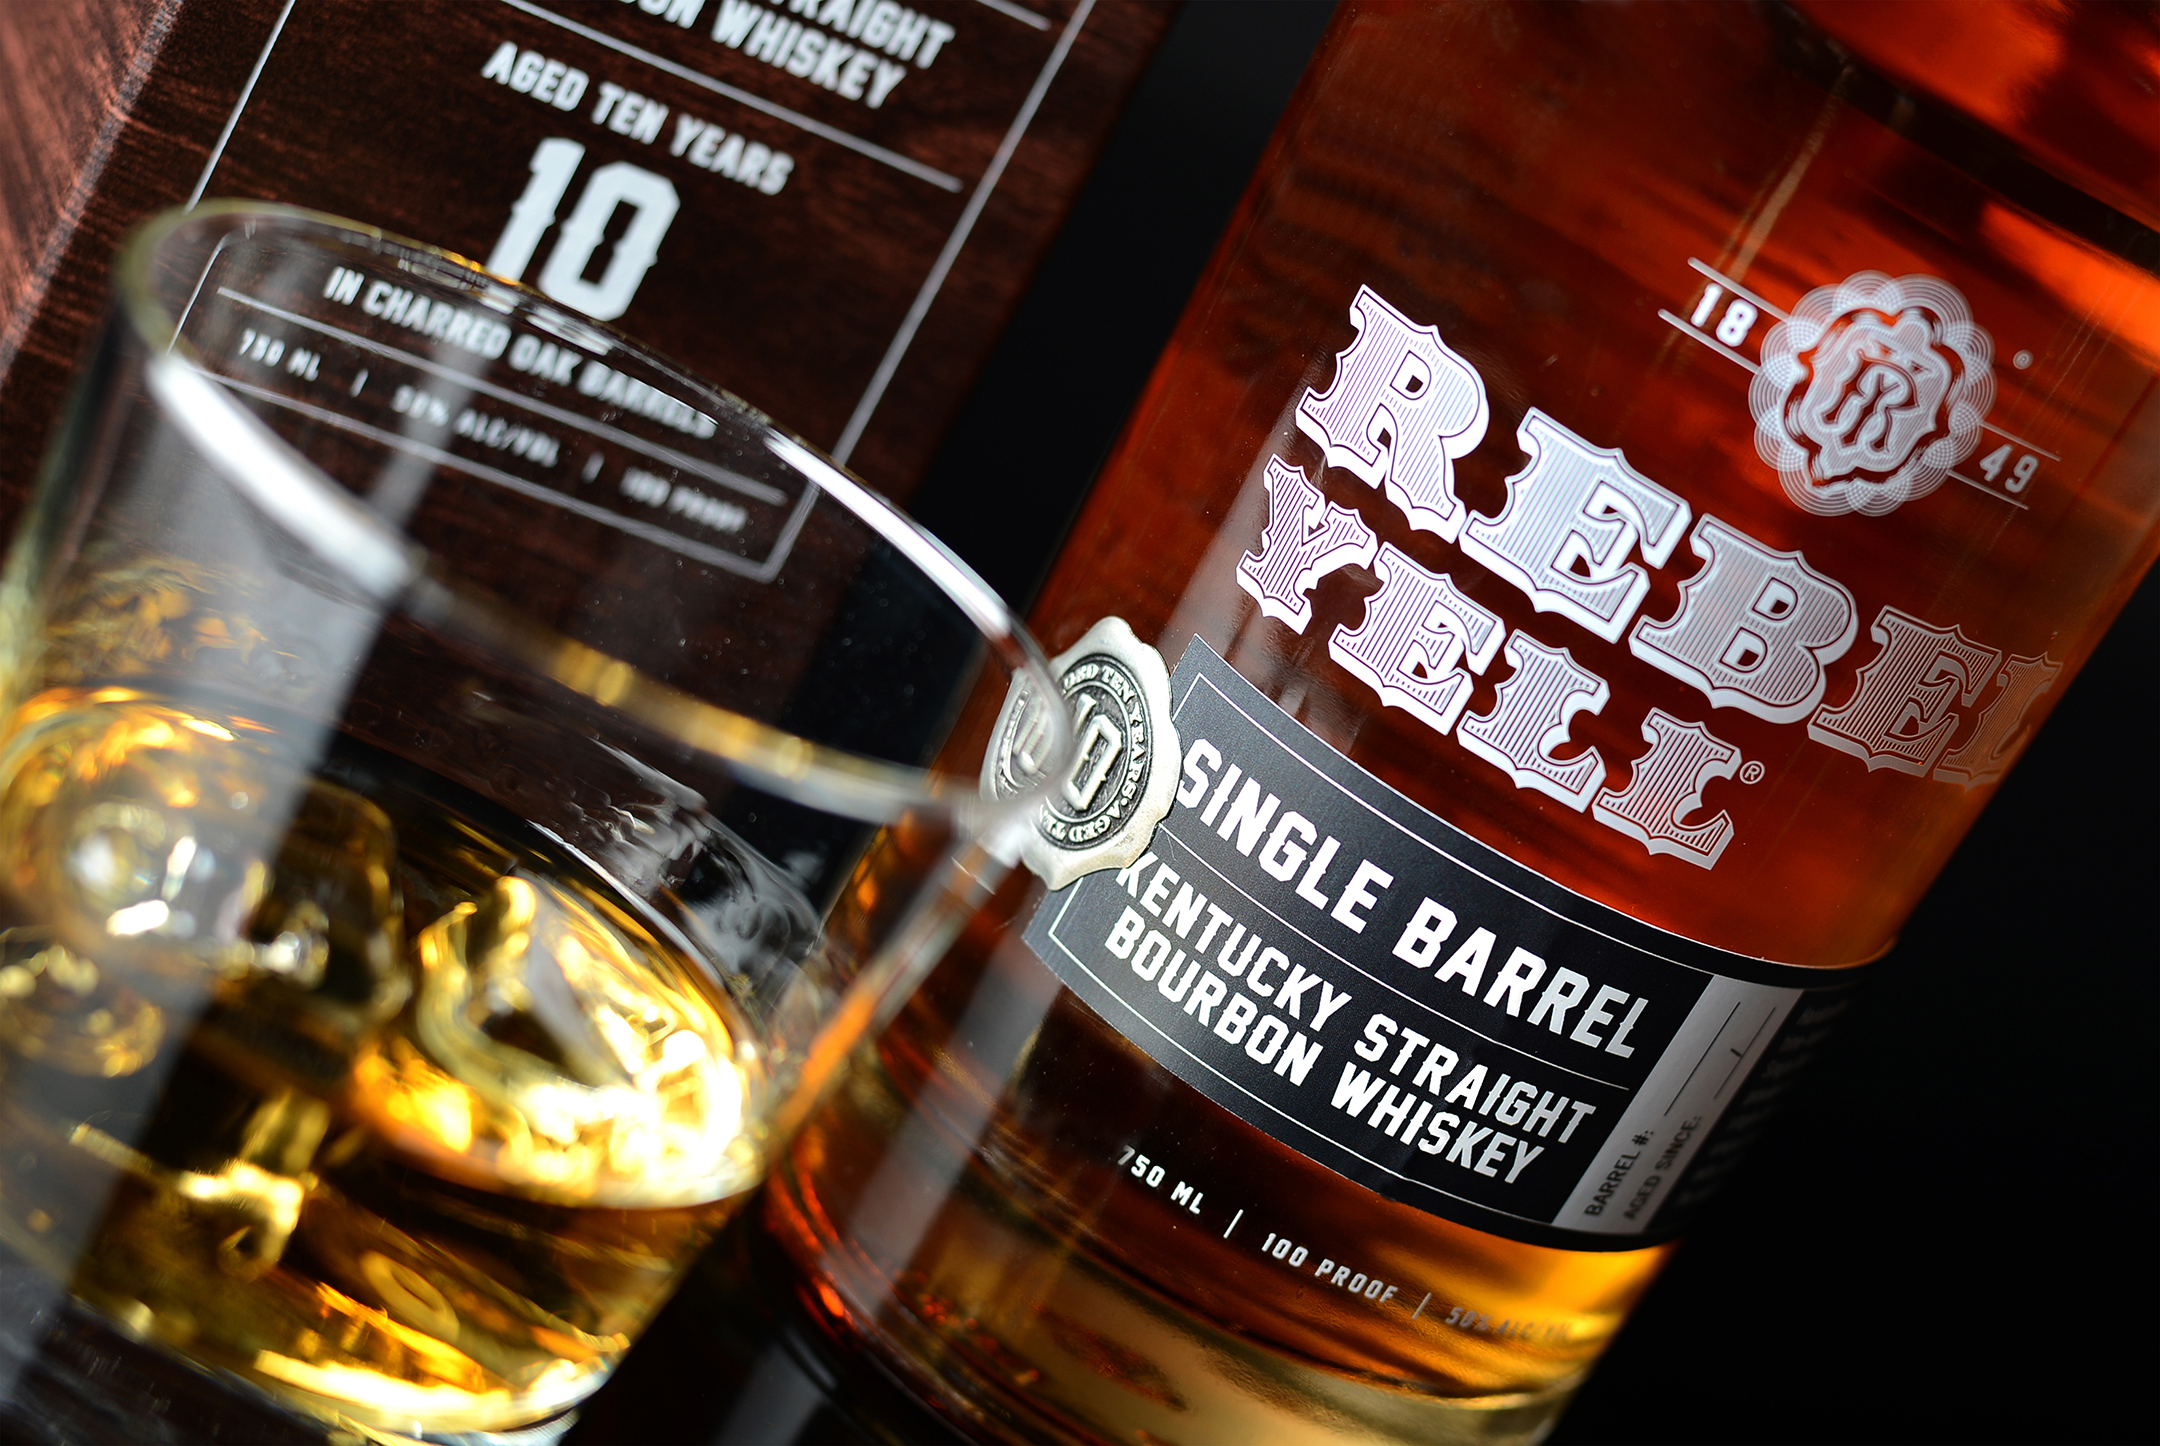 A glimpse of Rebel Yell's 10-Year Single Barrel Bourbon. Photography by Cfx, Inc.